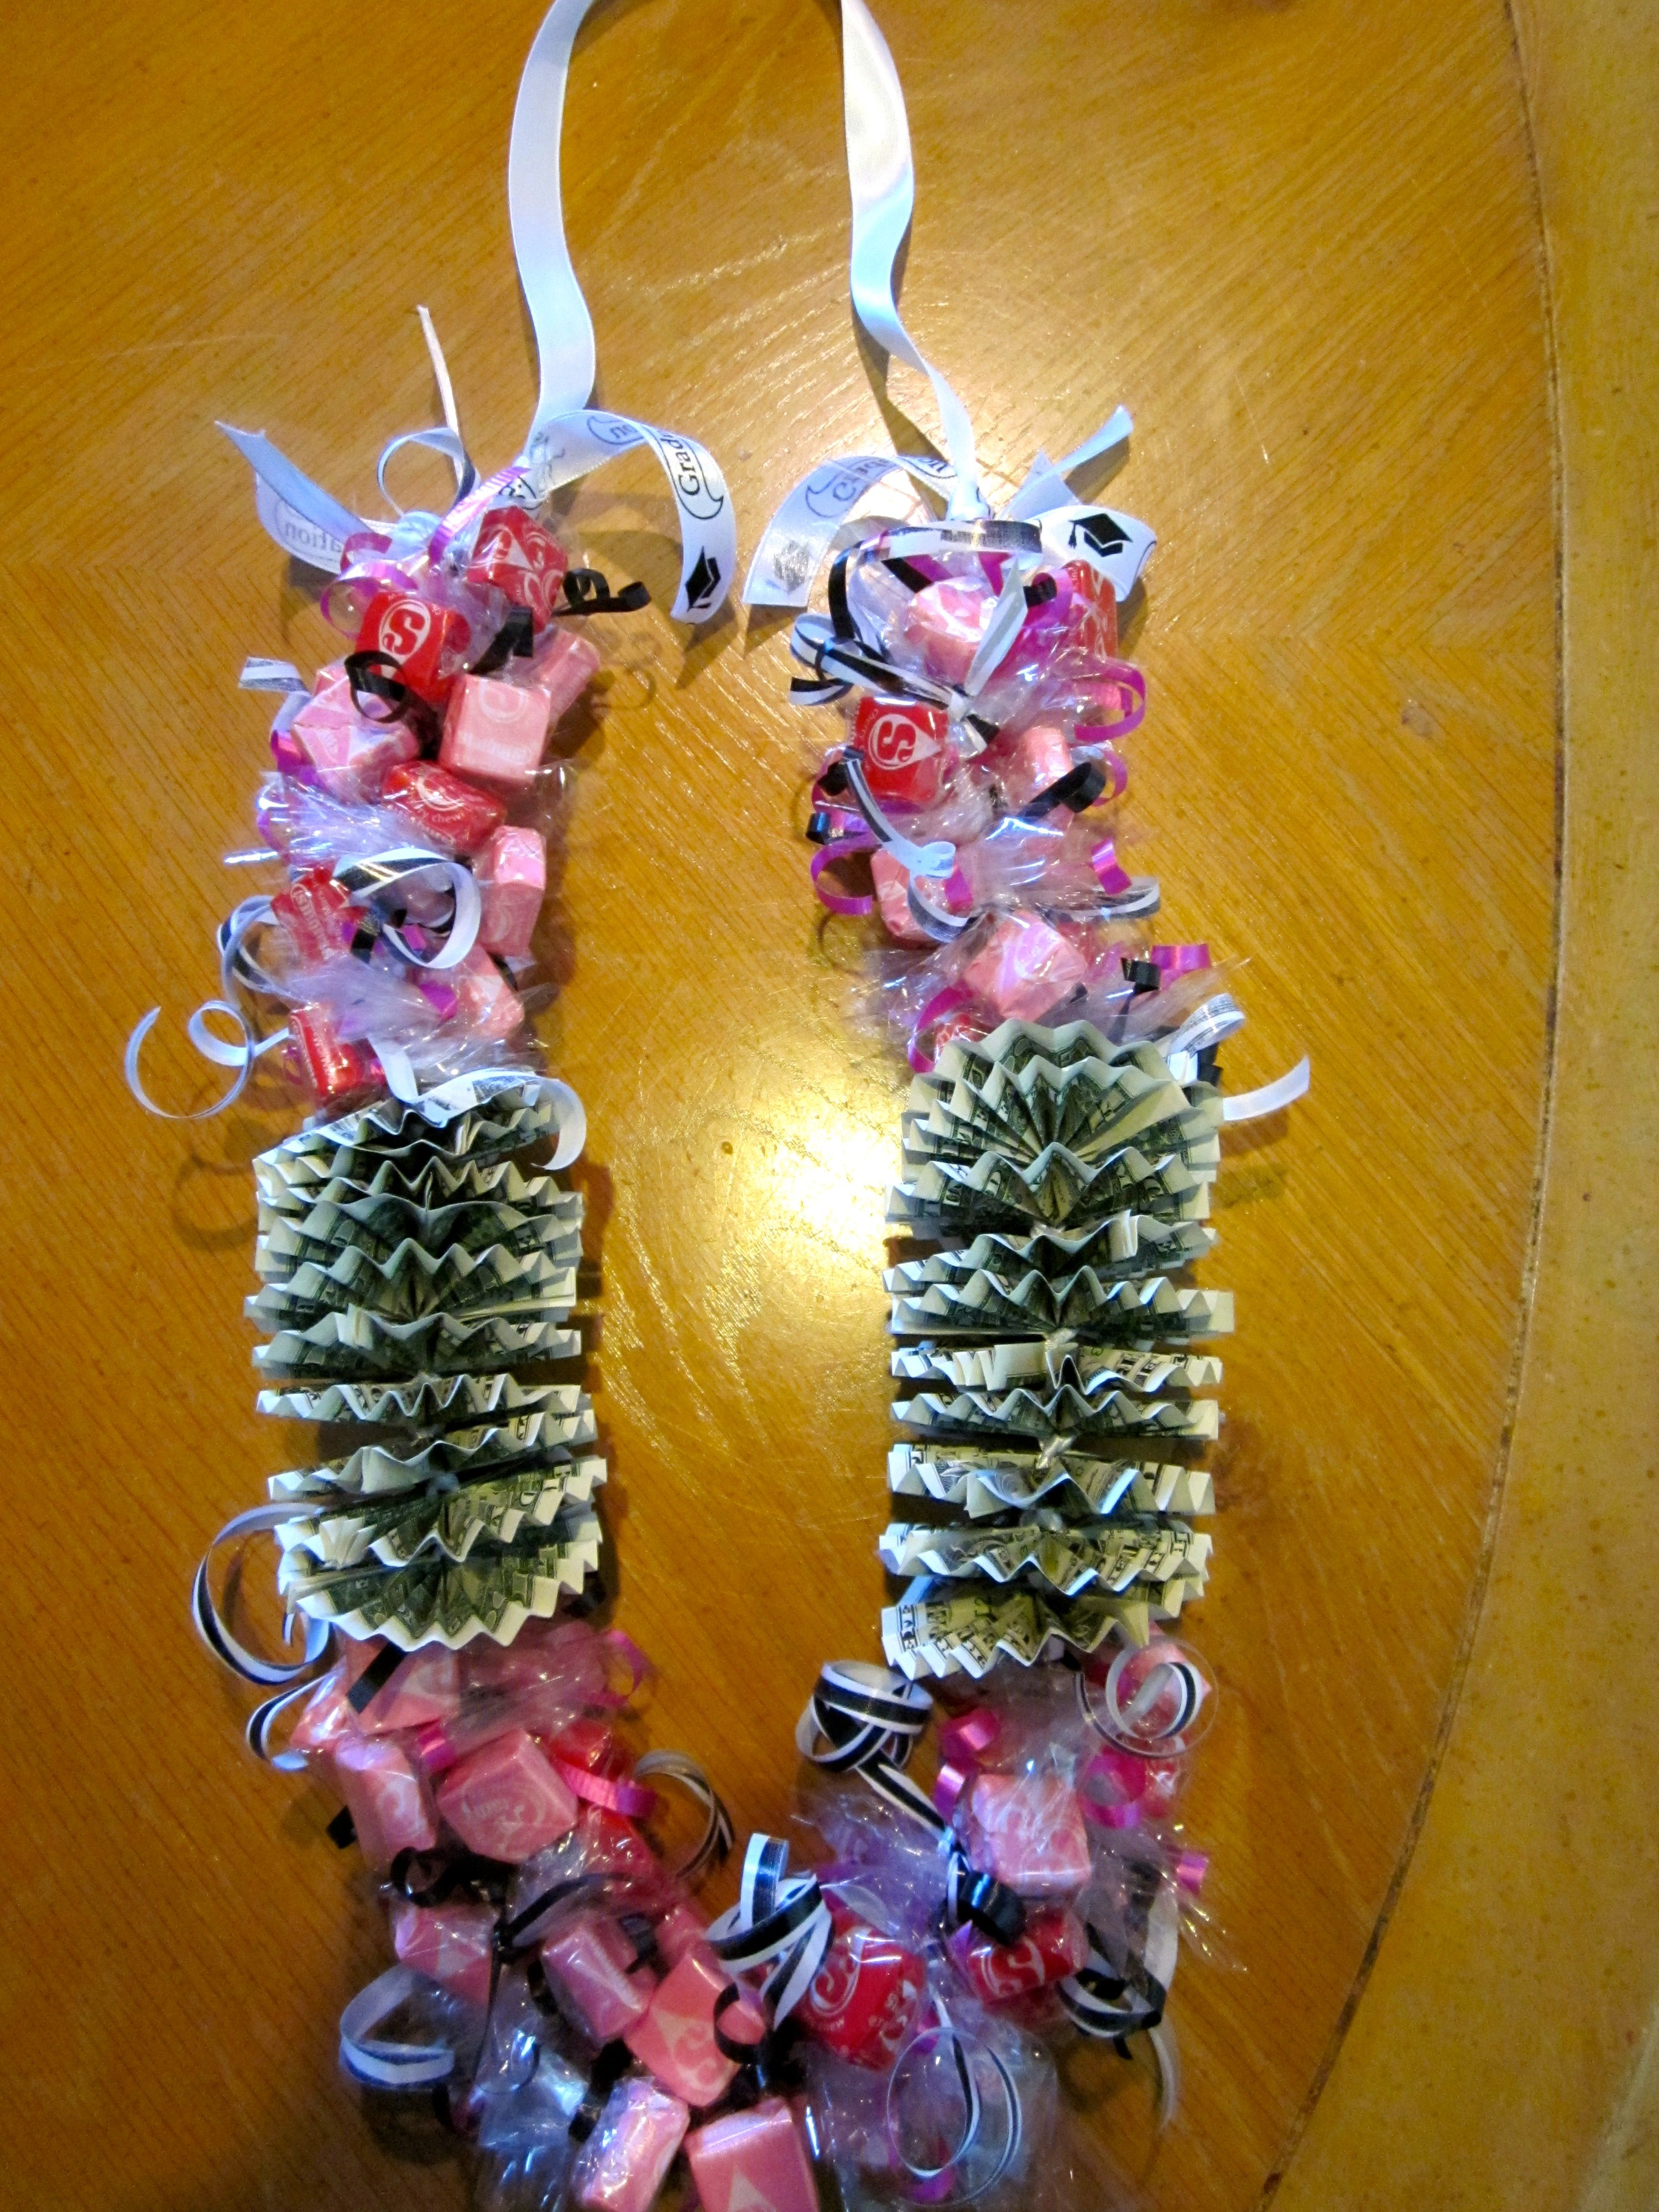 Lei Can Be Made With Construction Paper Yarn Solid: Graduation Money Candy Lei II